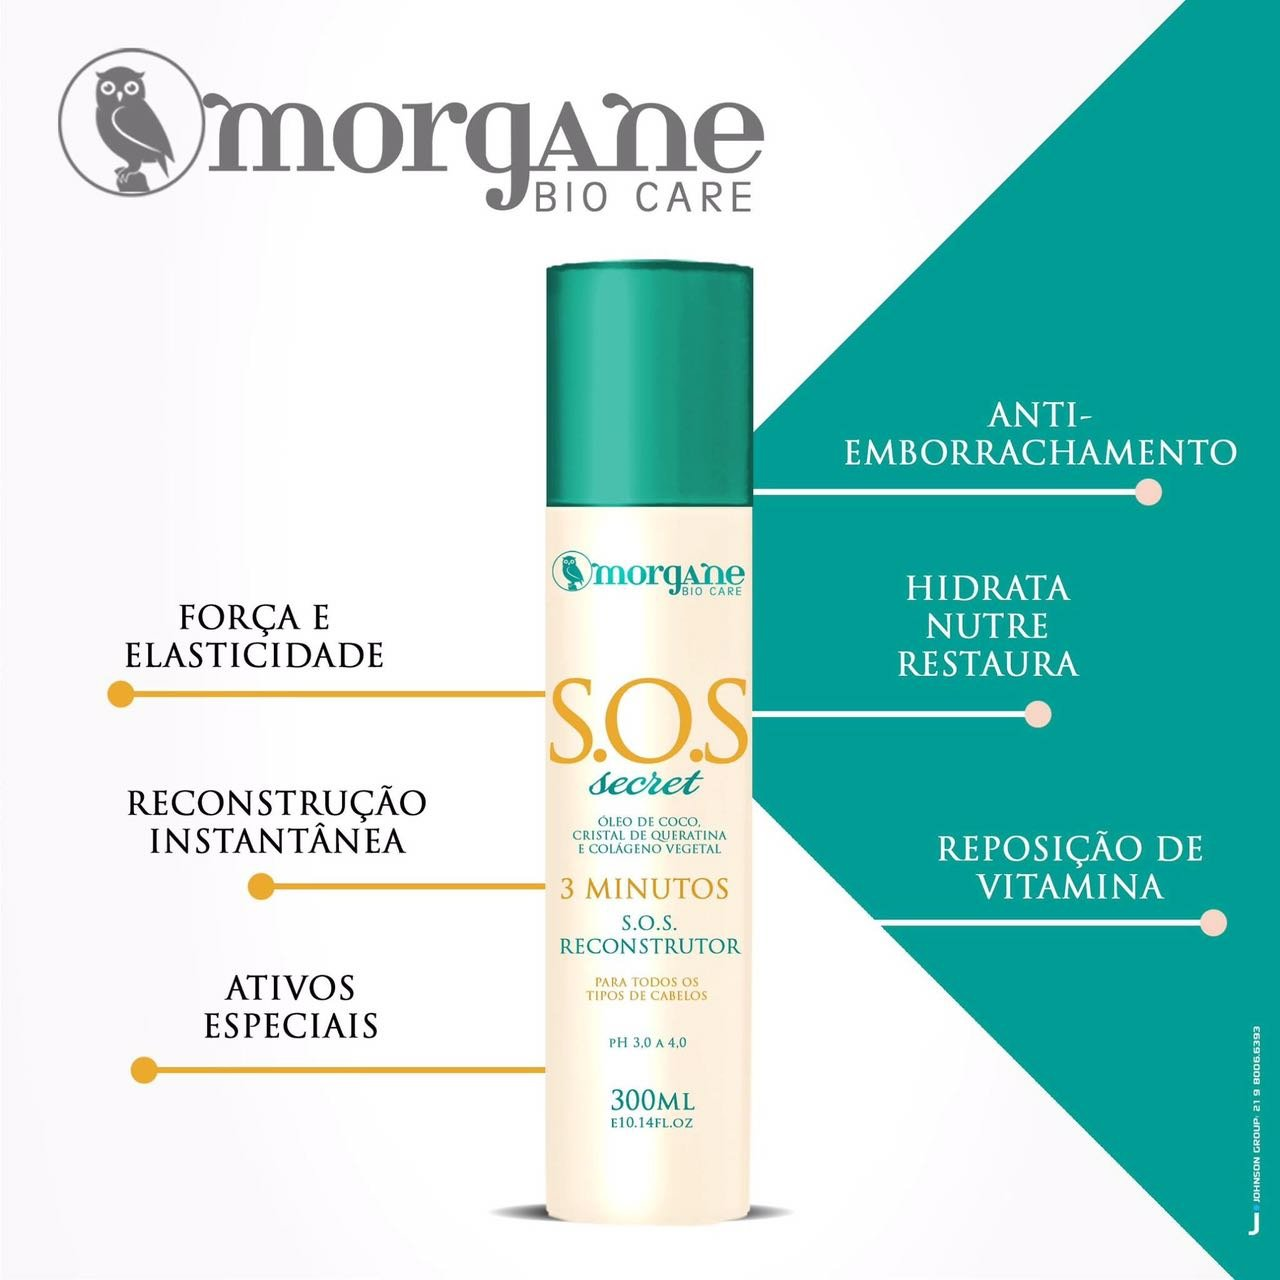 SOS Secret Reconstrutor Morgane Bio Care 300ml